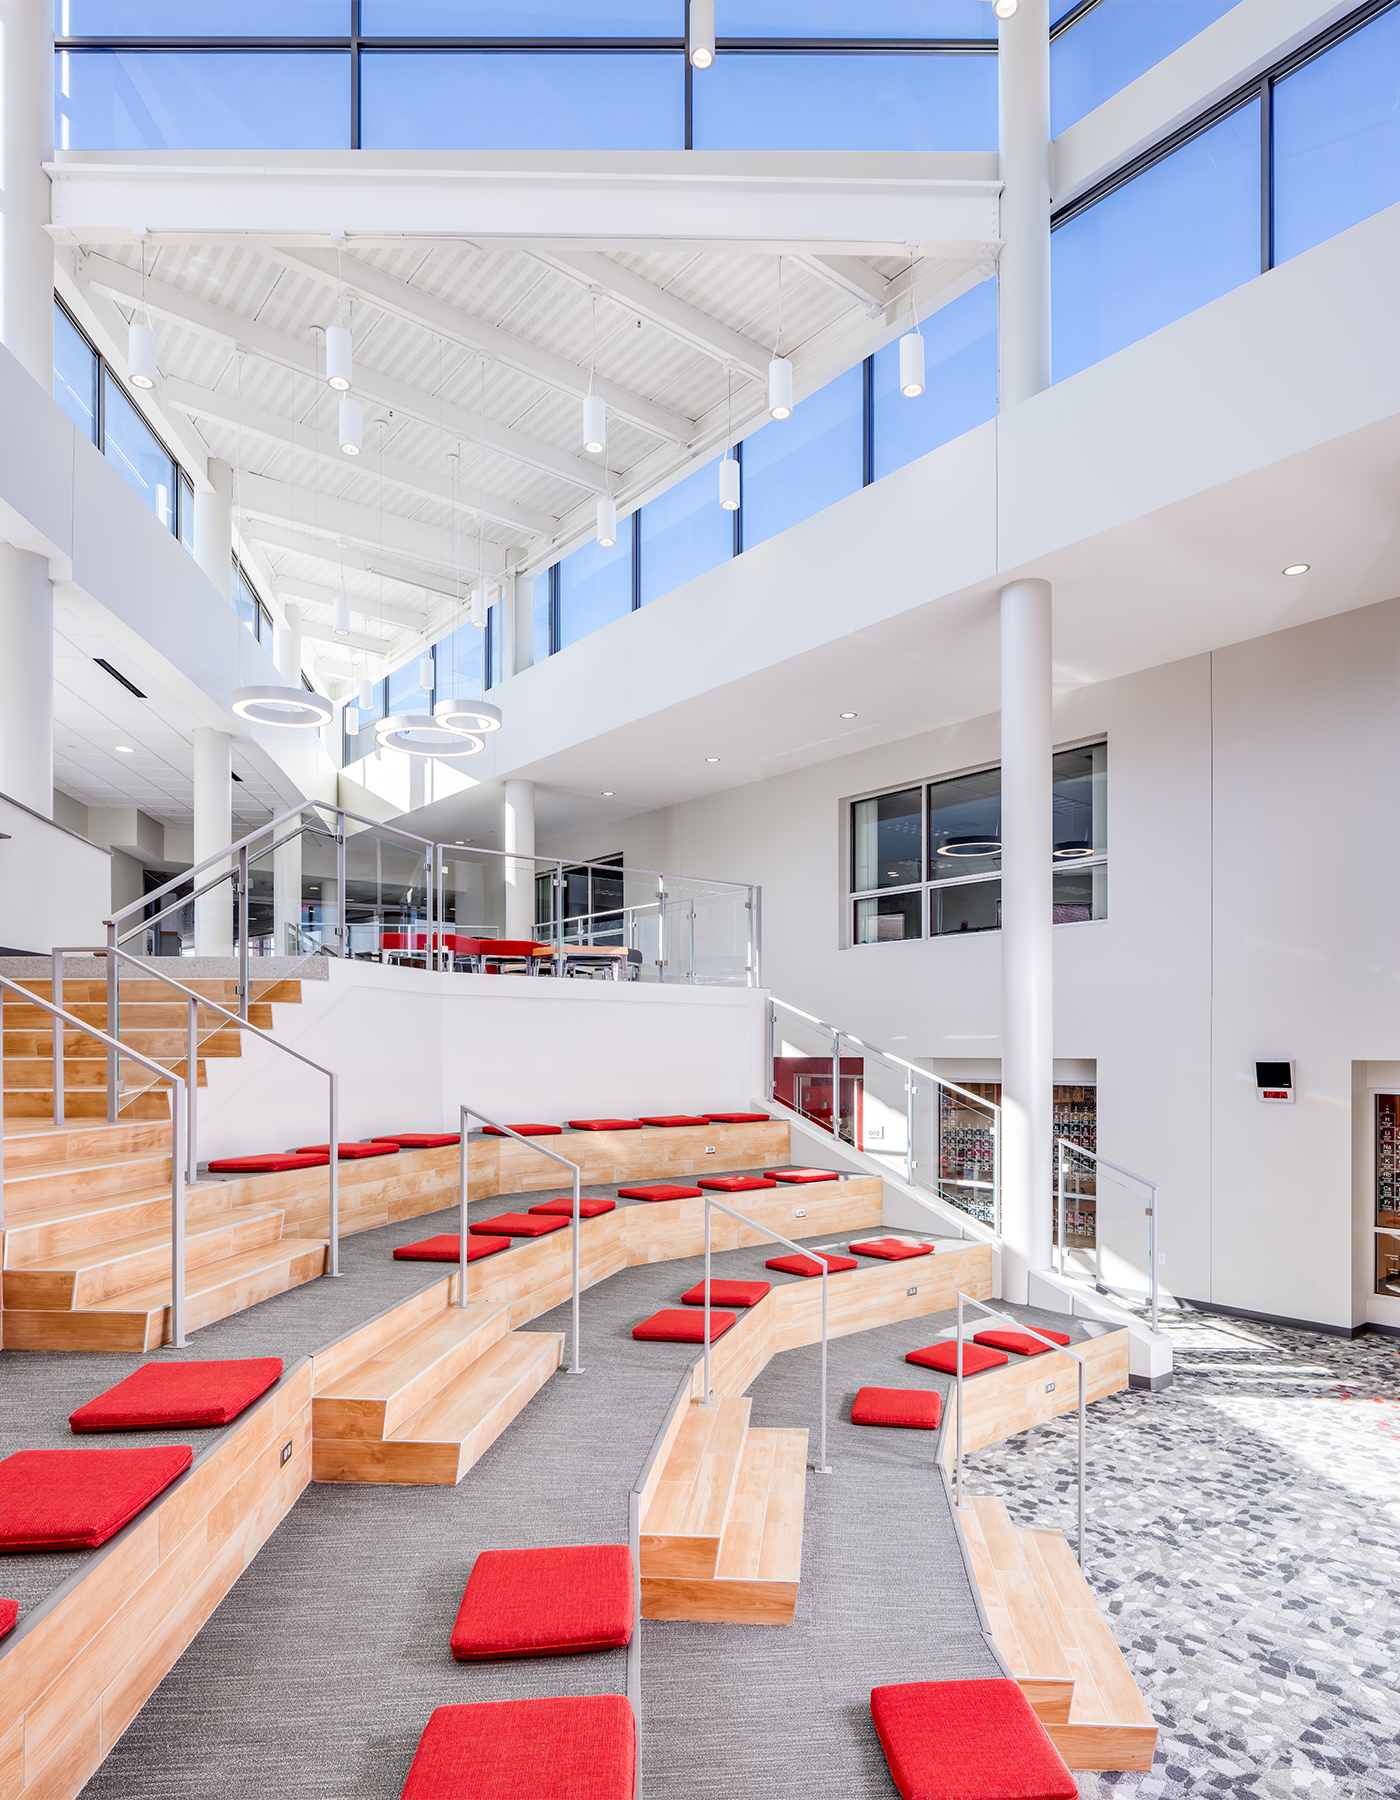 Light-filled atrium addition where students, teachers, and visitors activate into vital educational space.